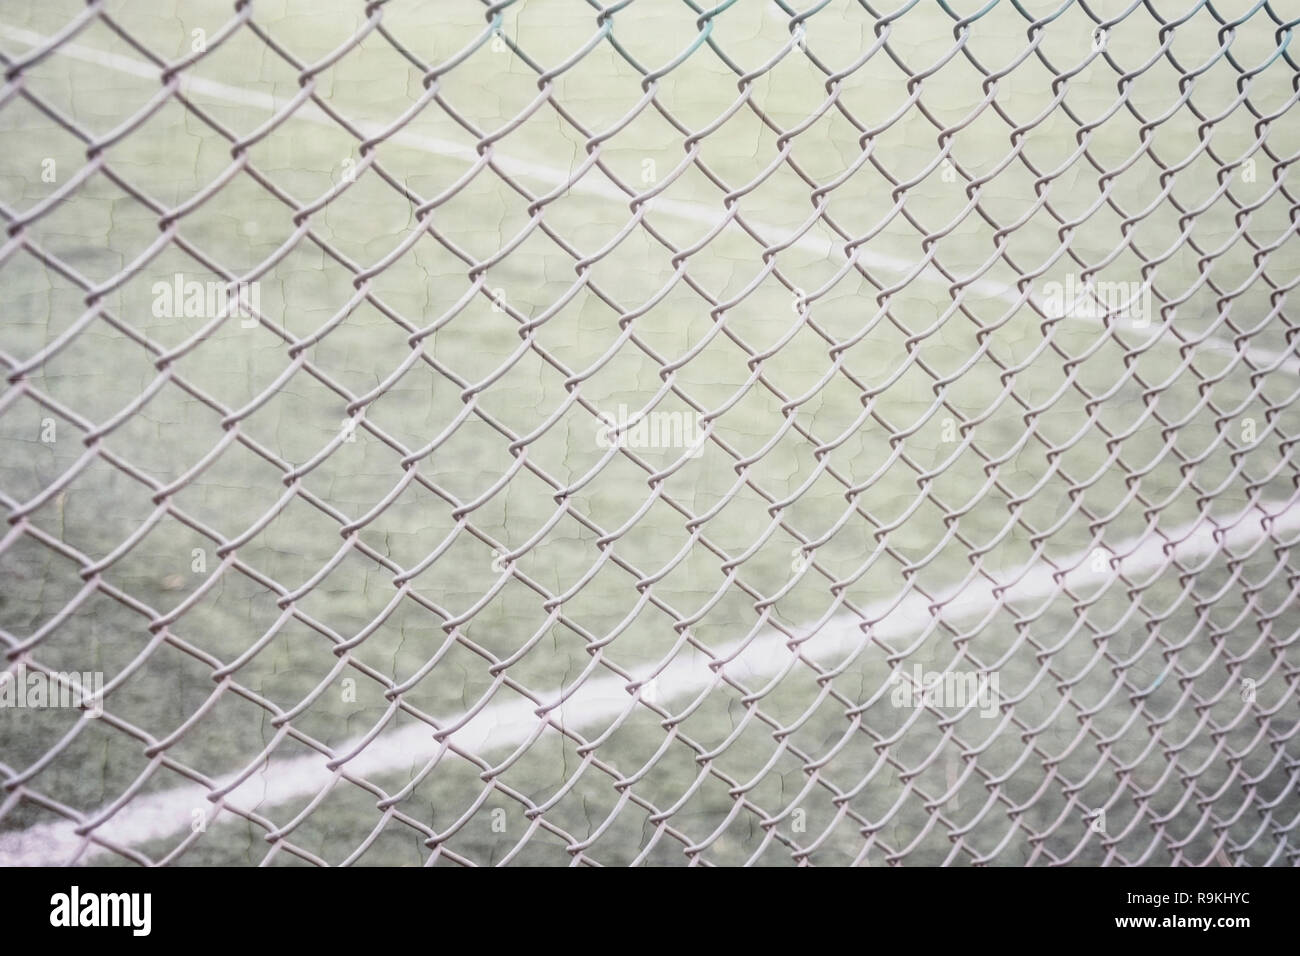 Tennis court fencing with netting netting against the background of the court and marking with white paint sports texture overlay texture - Stock Image